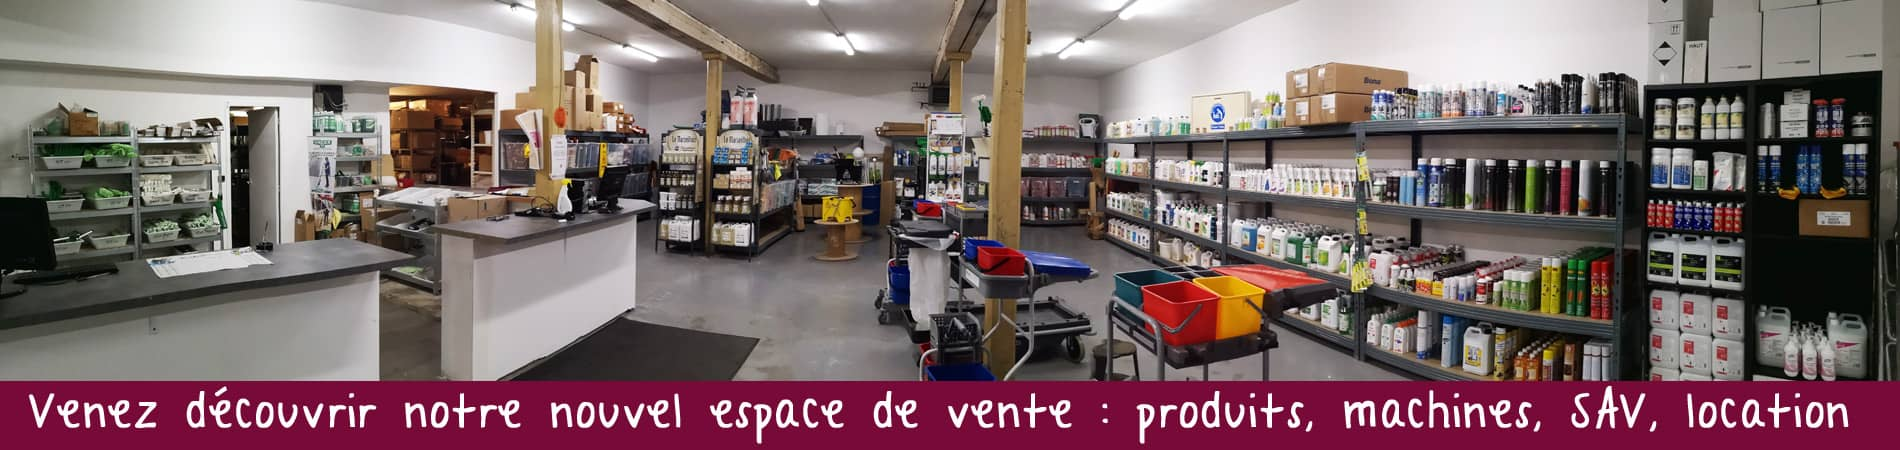 Banniere magasin